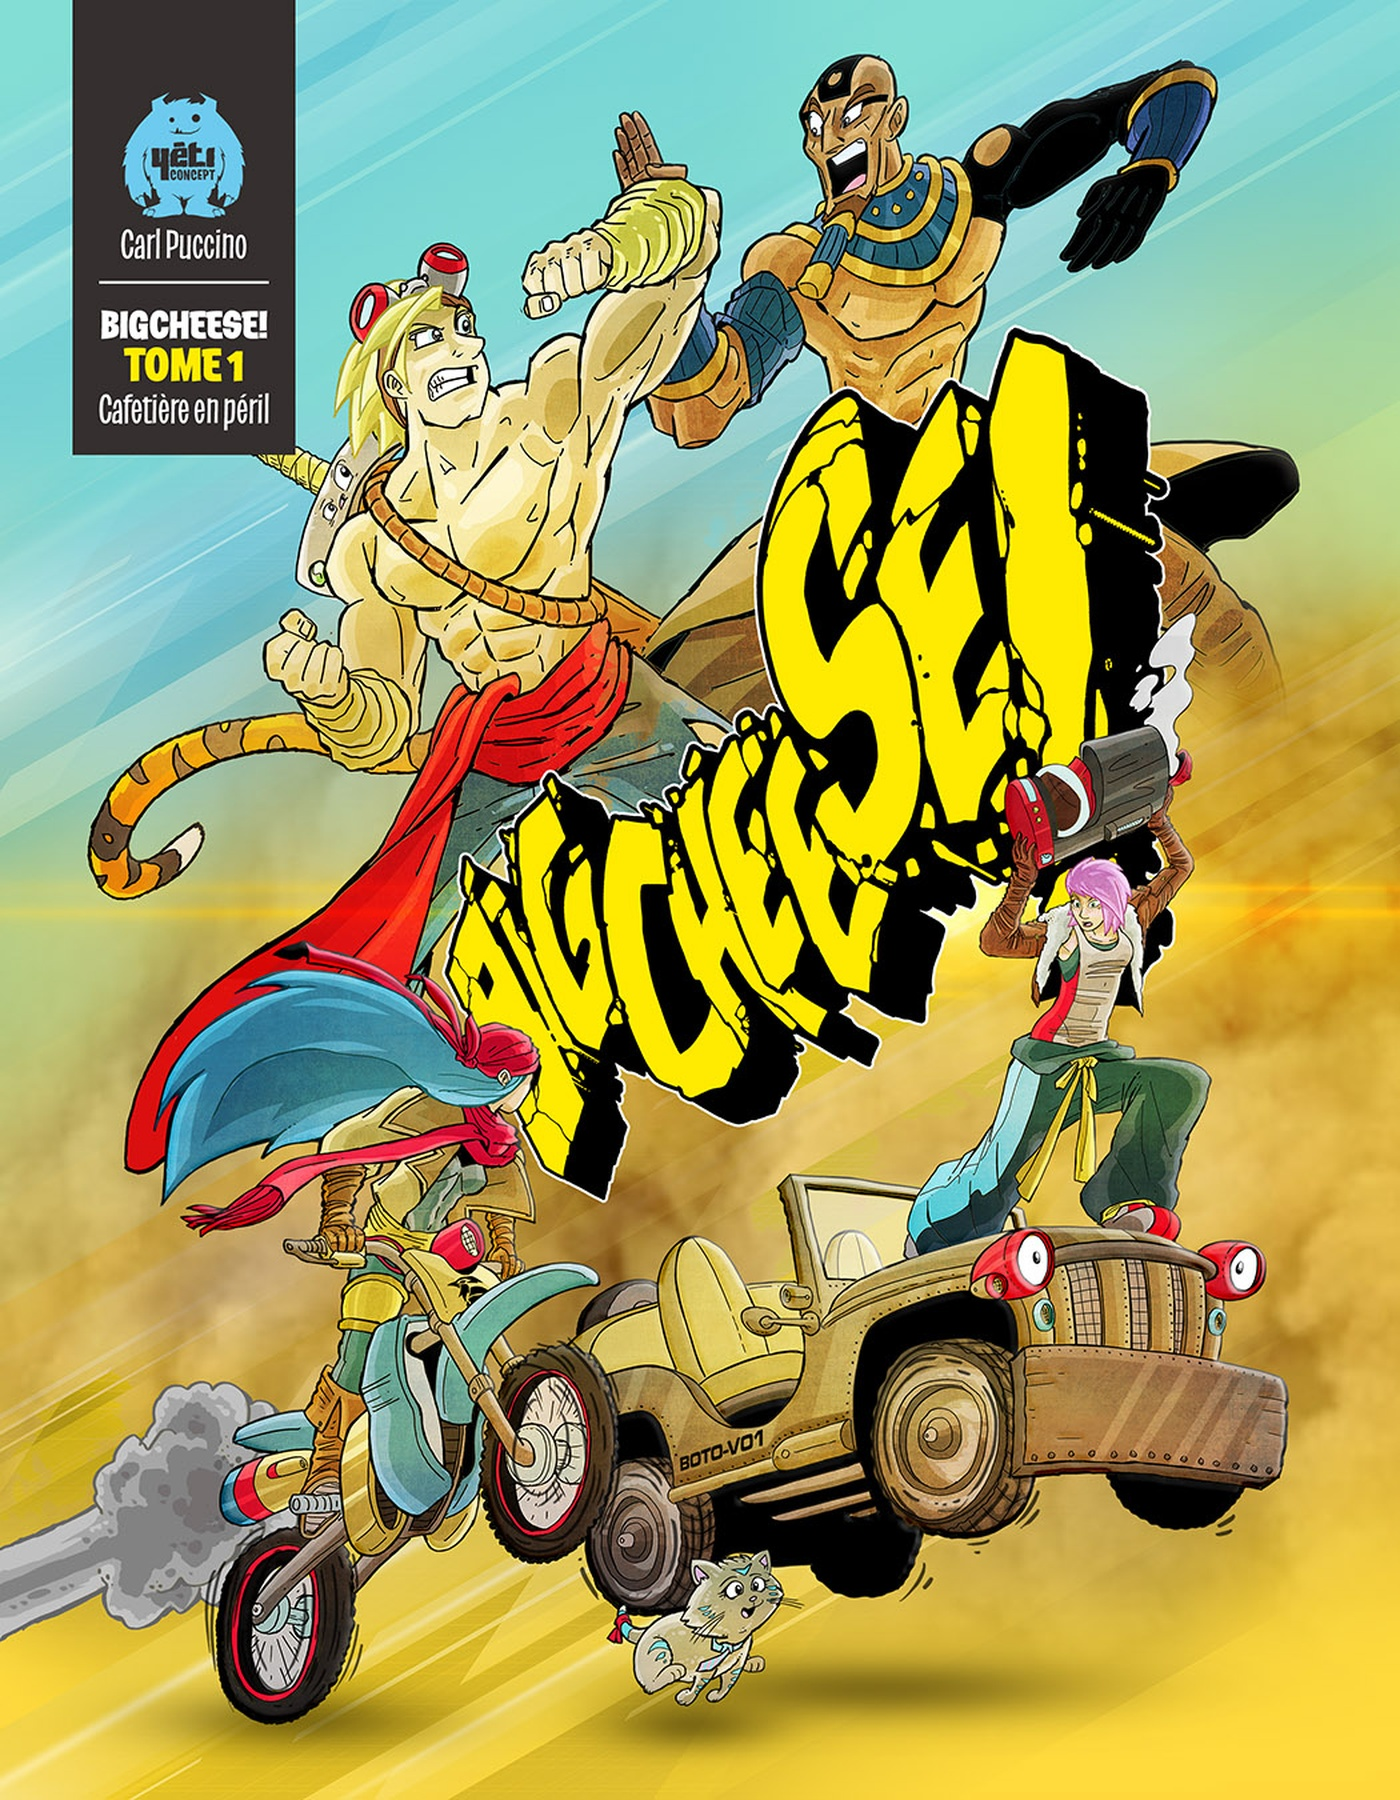 Carl Puccino - BigCheese! Couverture - Tome 1